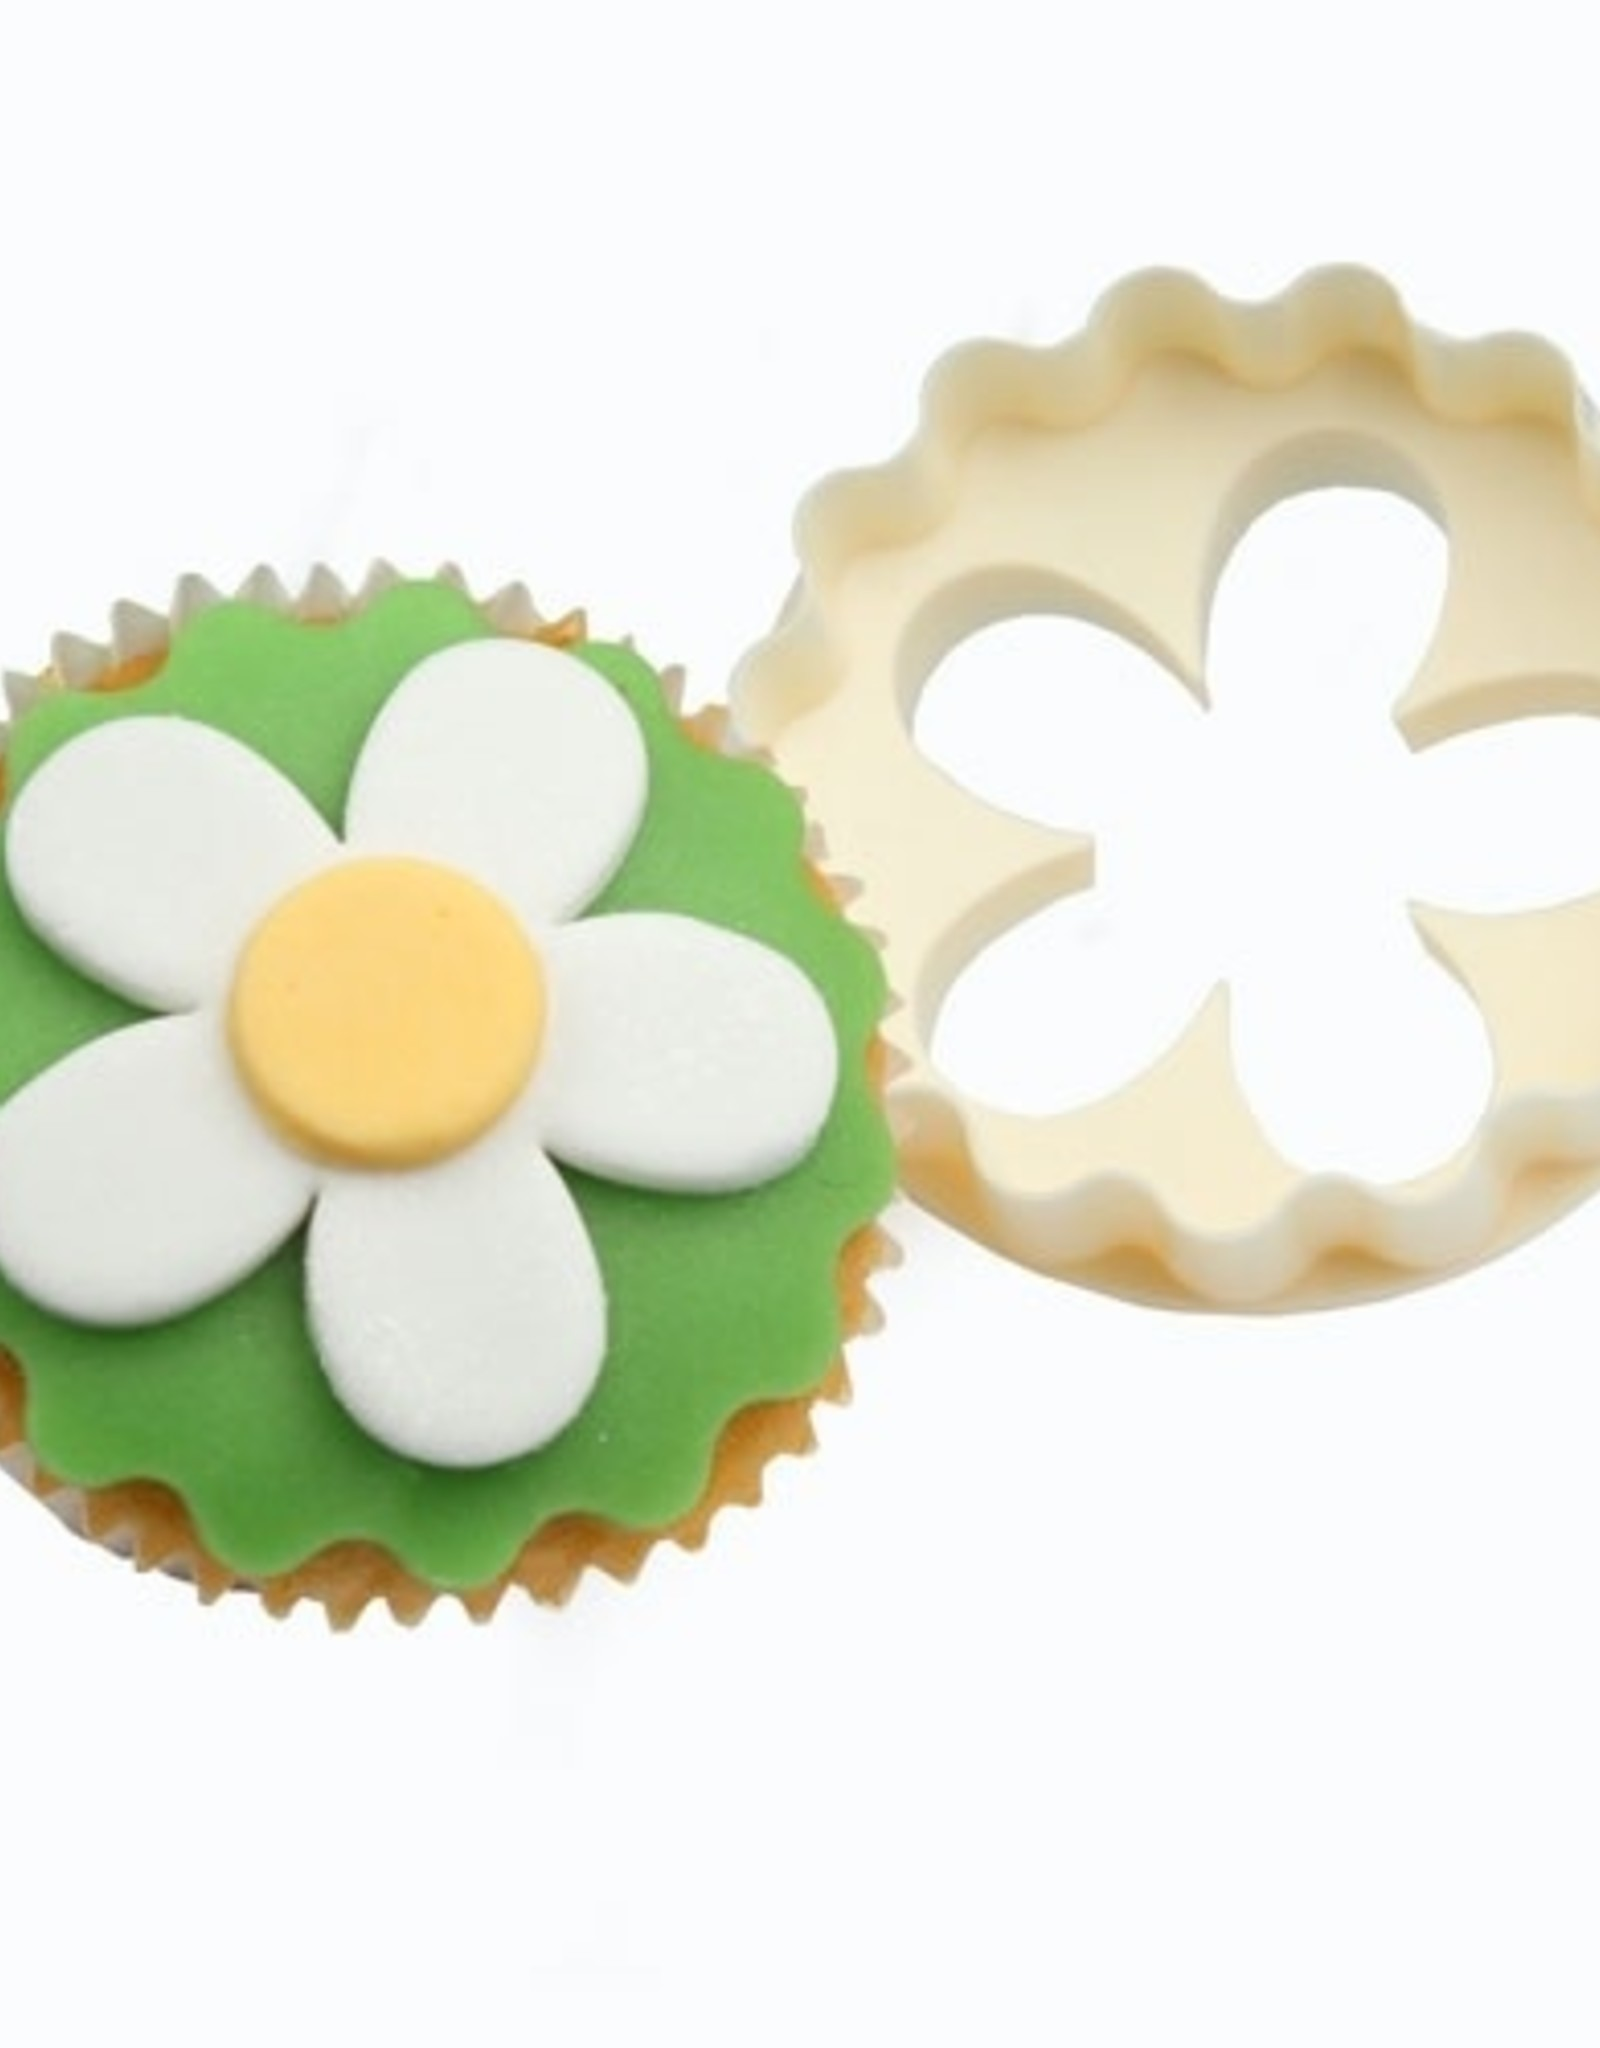 FMM FMM Double Sided Cupcake Cutter Blossom/Scallop